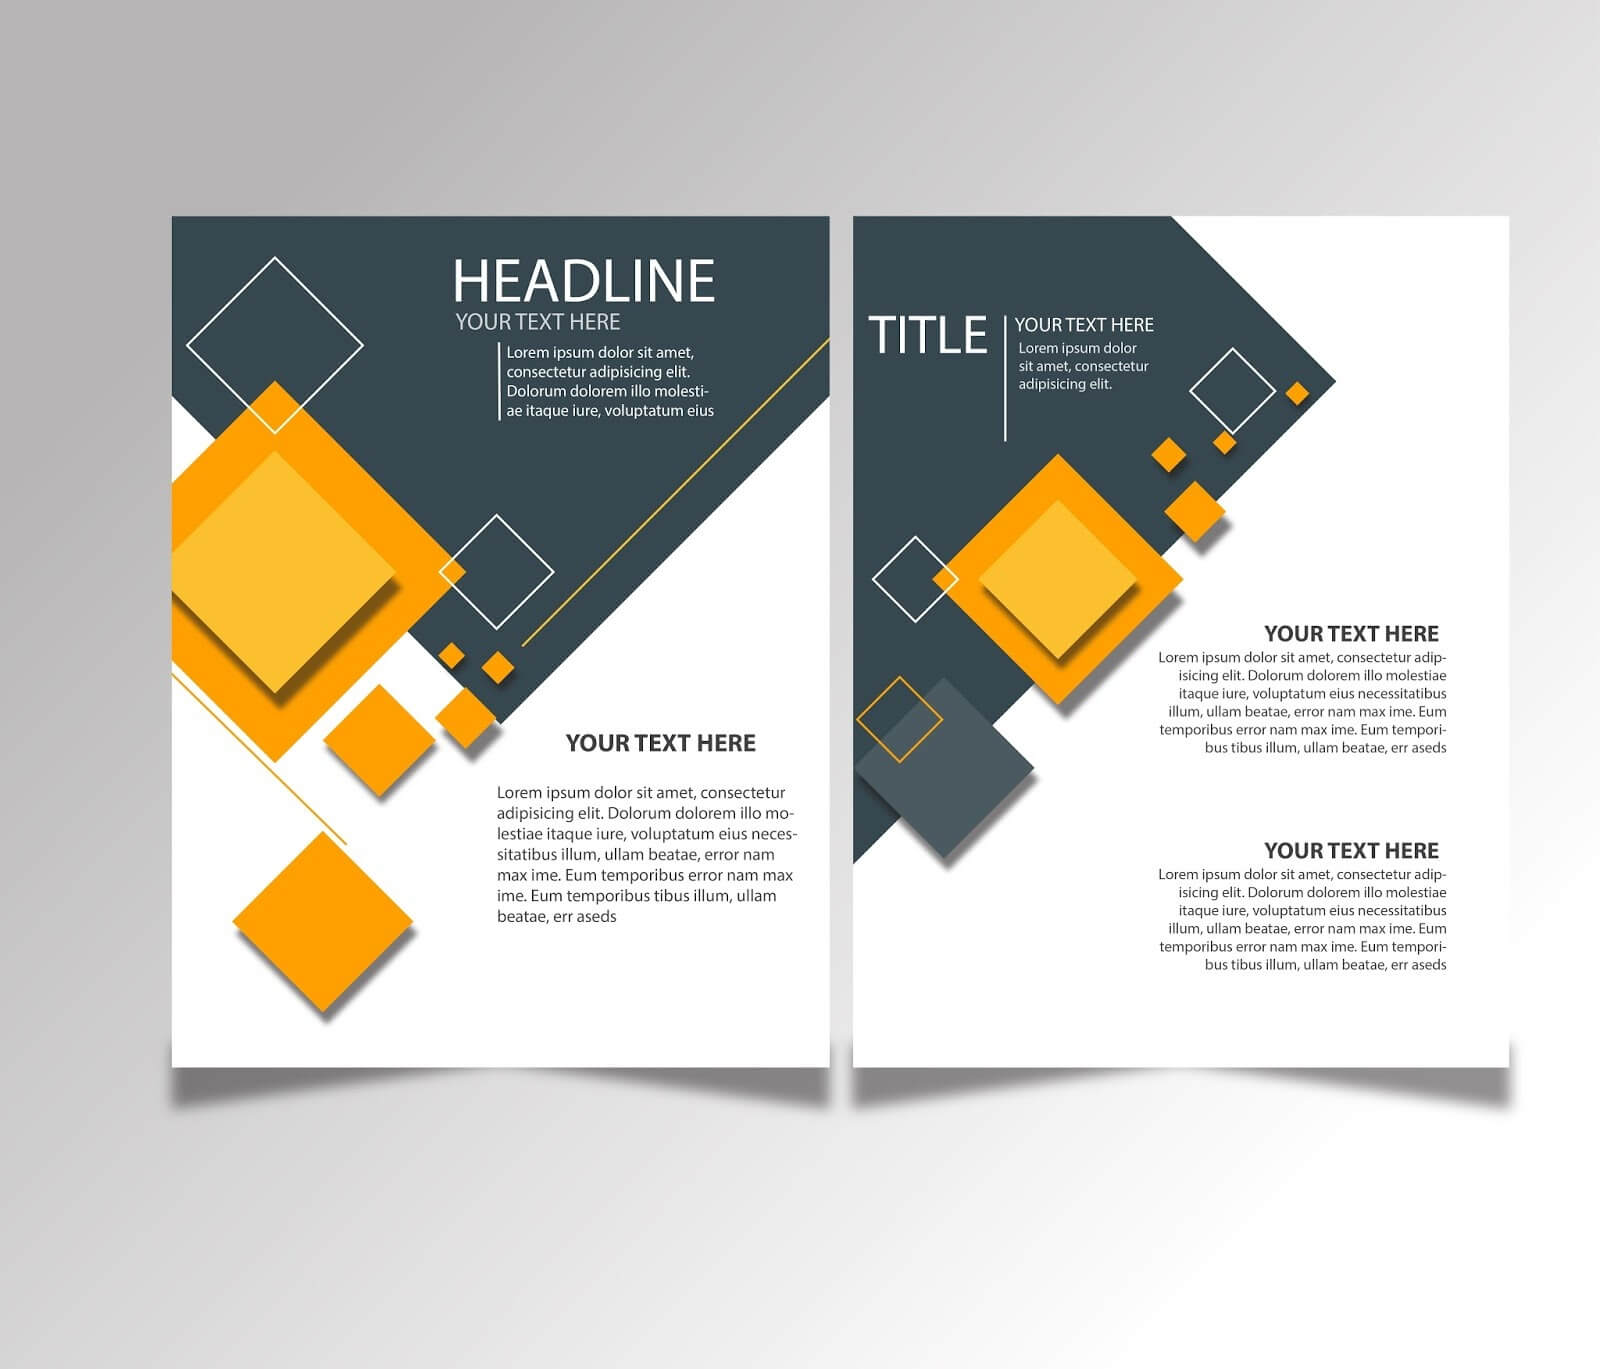 Free Download Brochure Design Templates Ai Files - Ideosprocess Pertaining To Brochure Template Illustrator Free Download